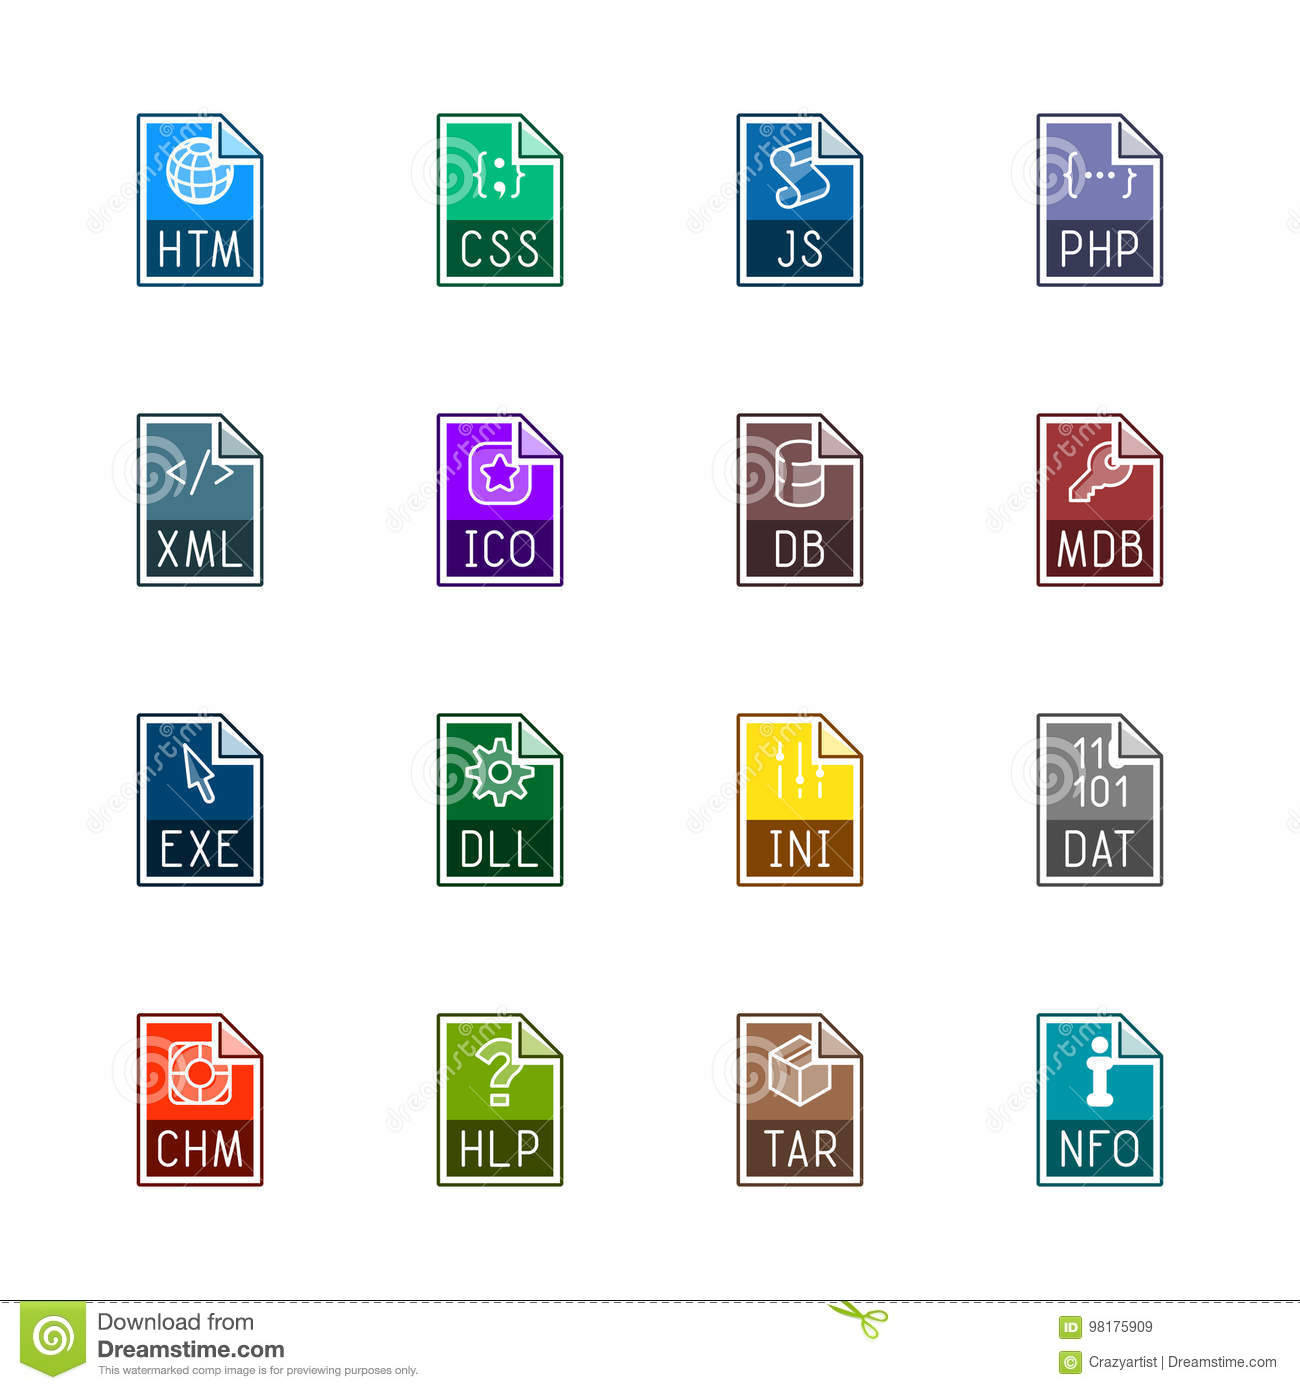 File type icons: Websites and applications - Linne Color